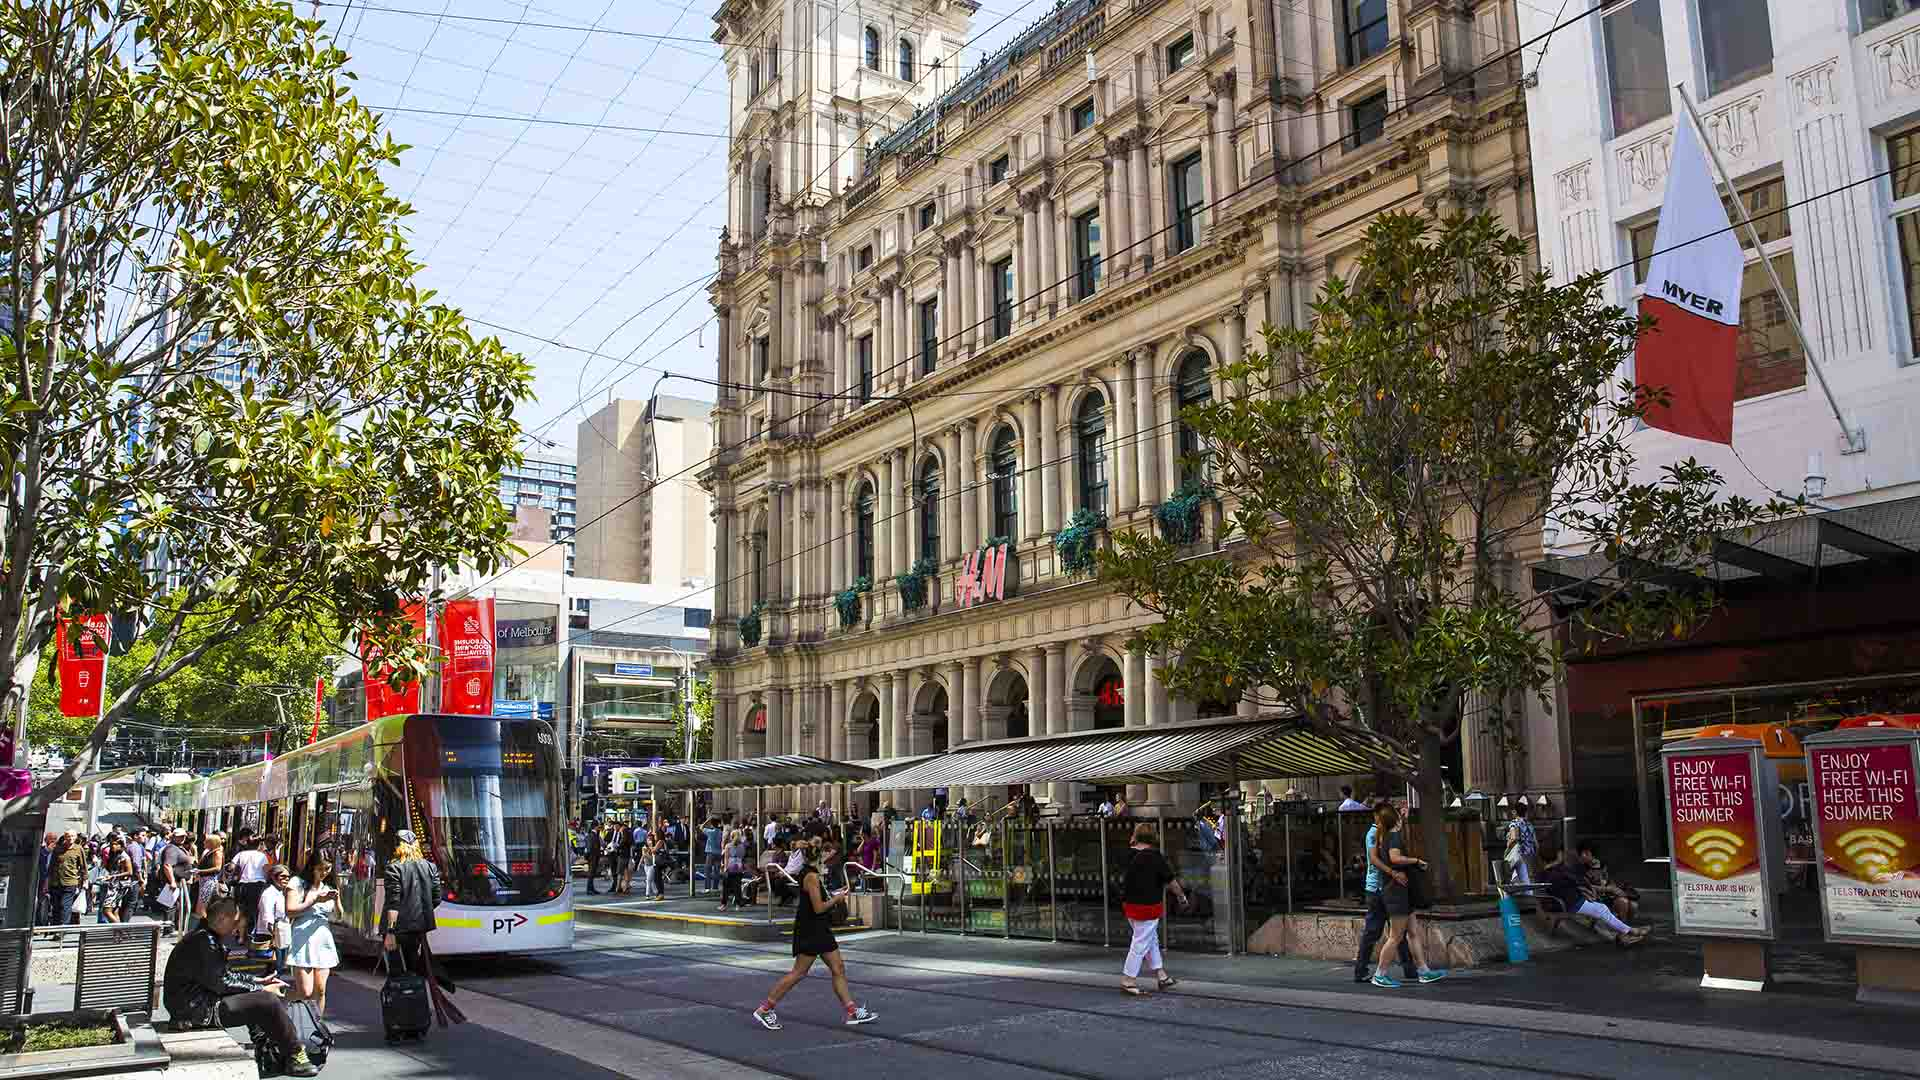 Victoria's Restrictions Will Ease Again on October 29, Reopening Retail and Allowing Regional Travel